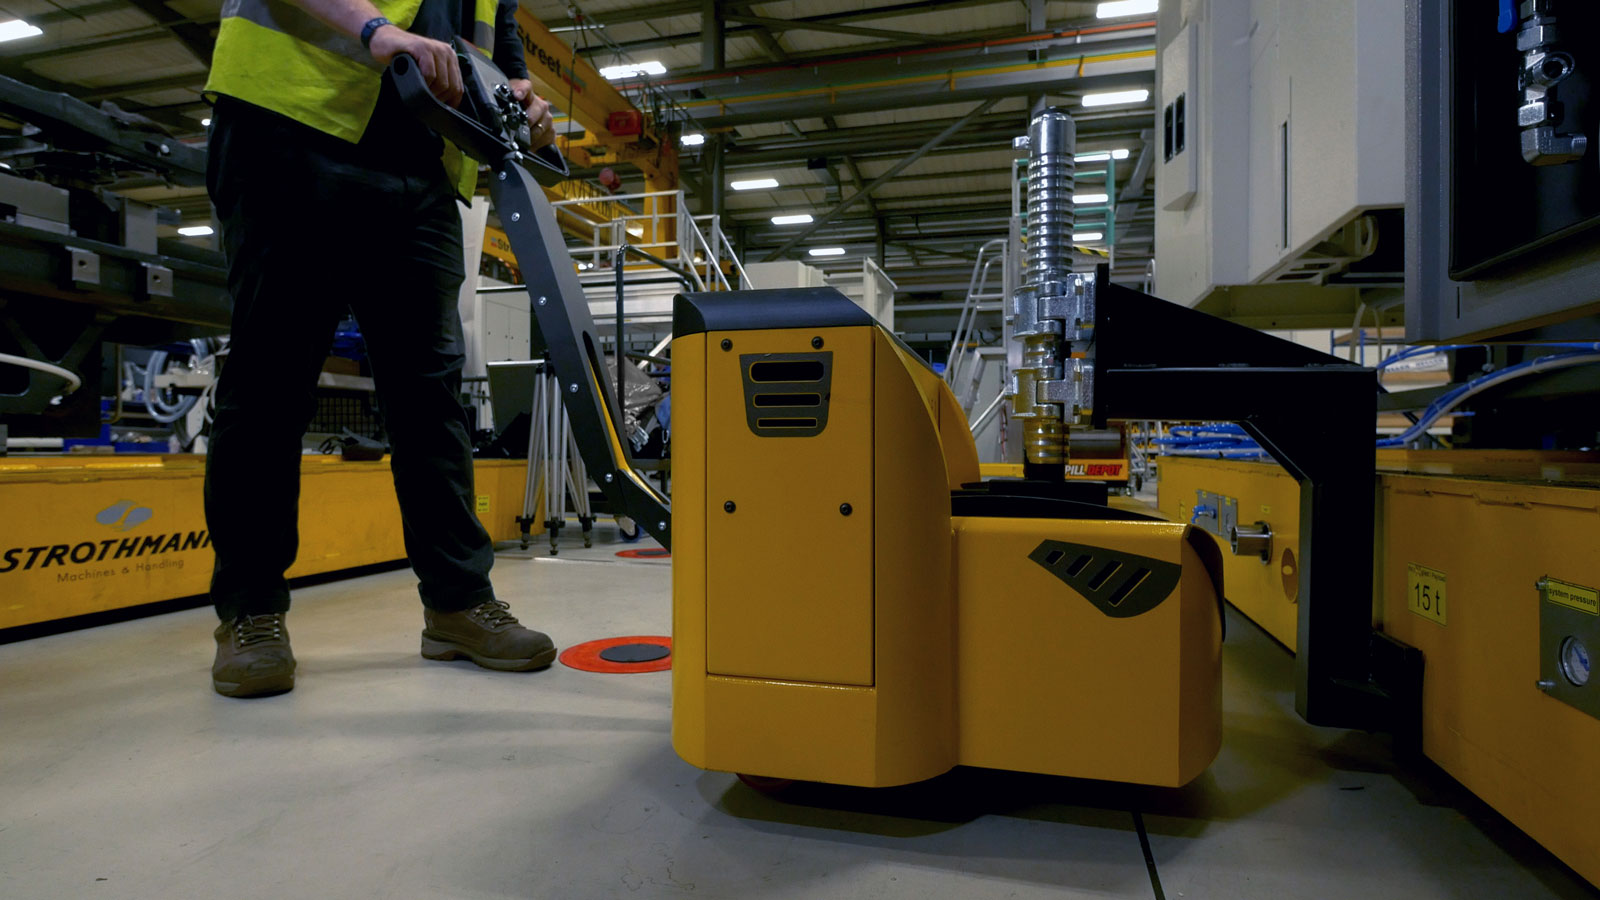 Image of a electric tug motormover used in material handling